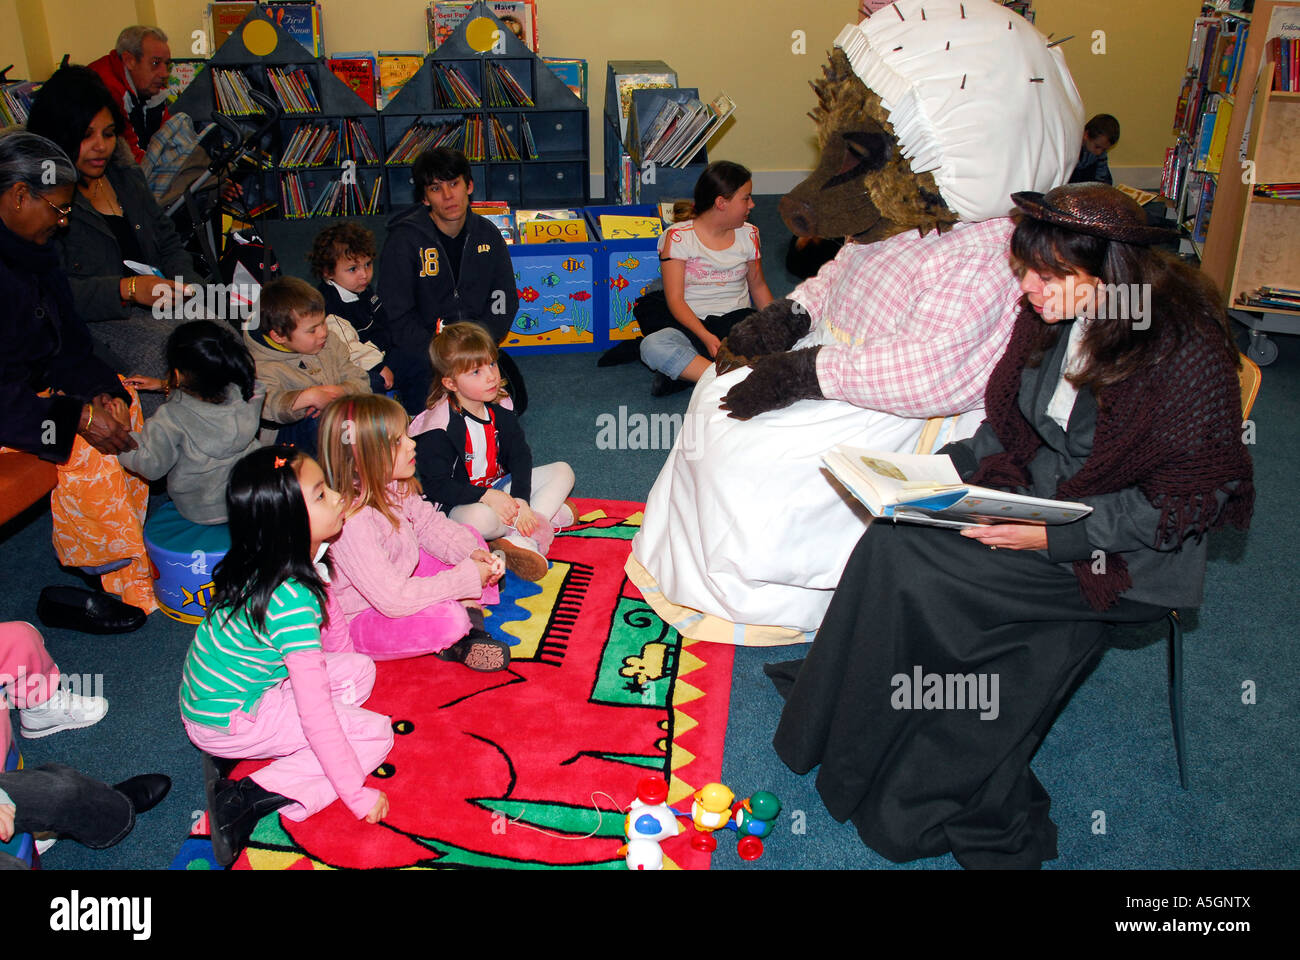 Parents with their children during half term listening to a book reading session of Beatrix Potter books, Feltham, - Stock Image